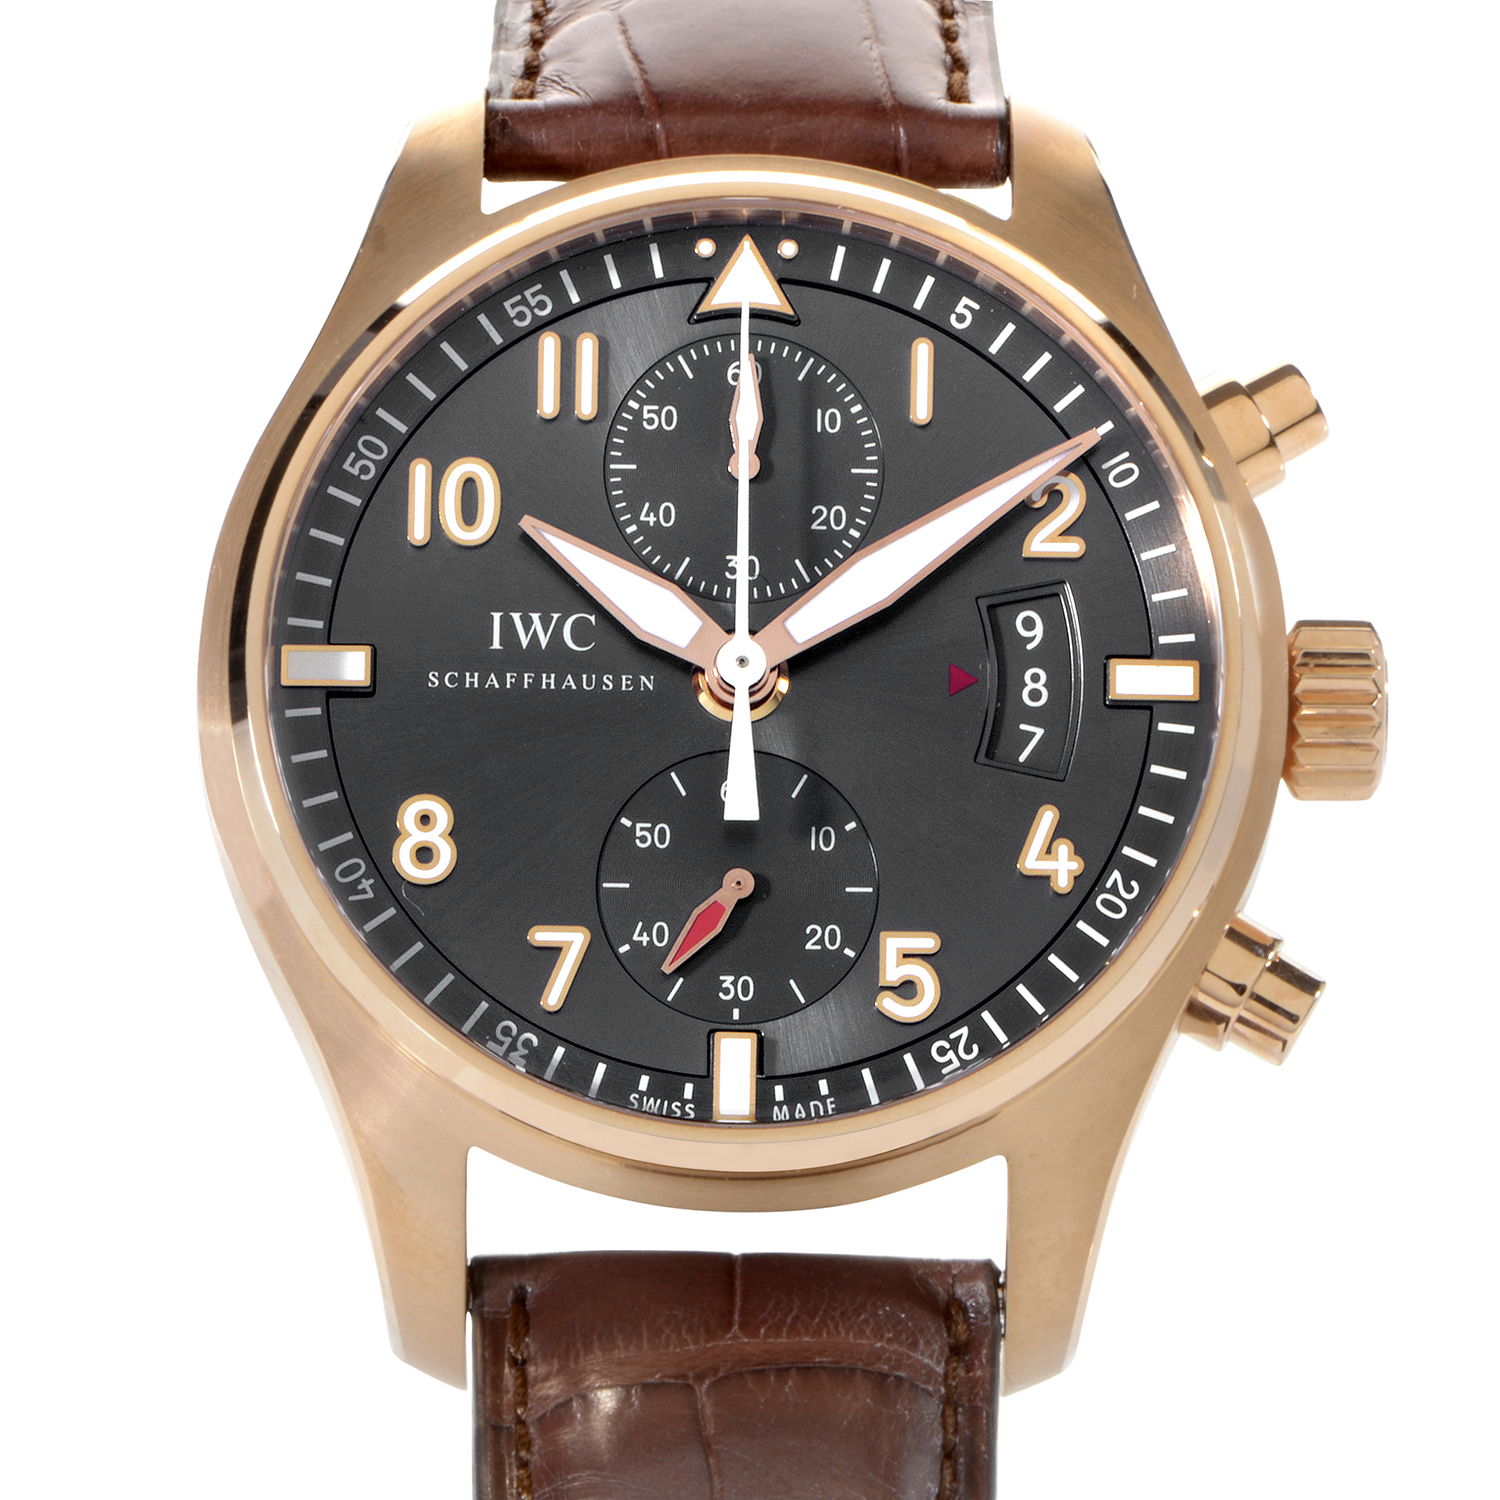 Spitfire Chronograph IW387803